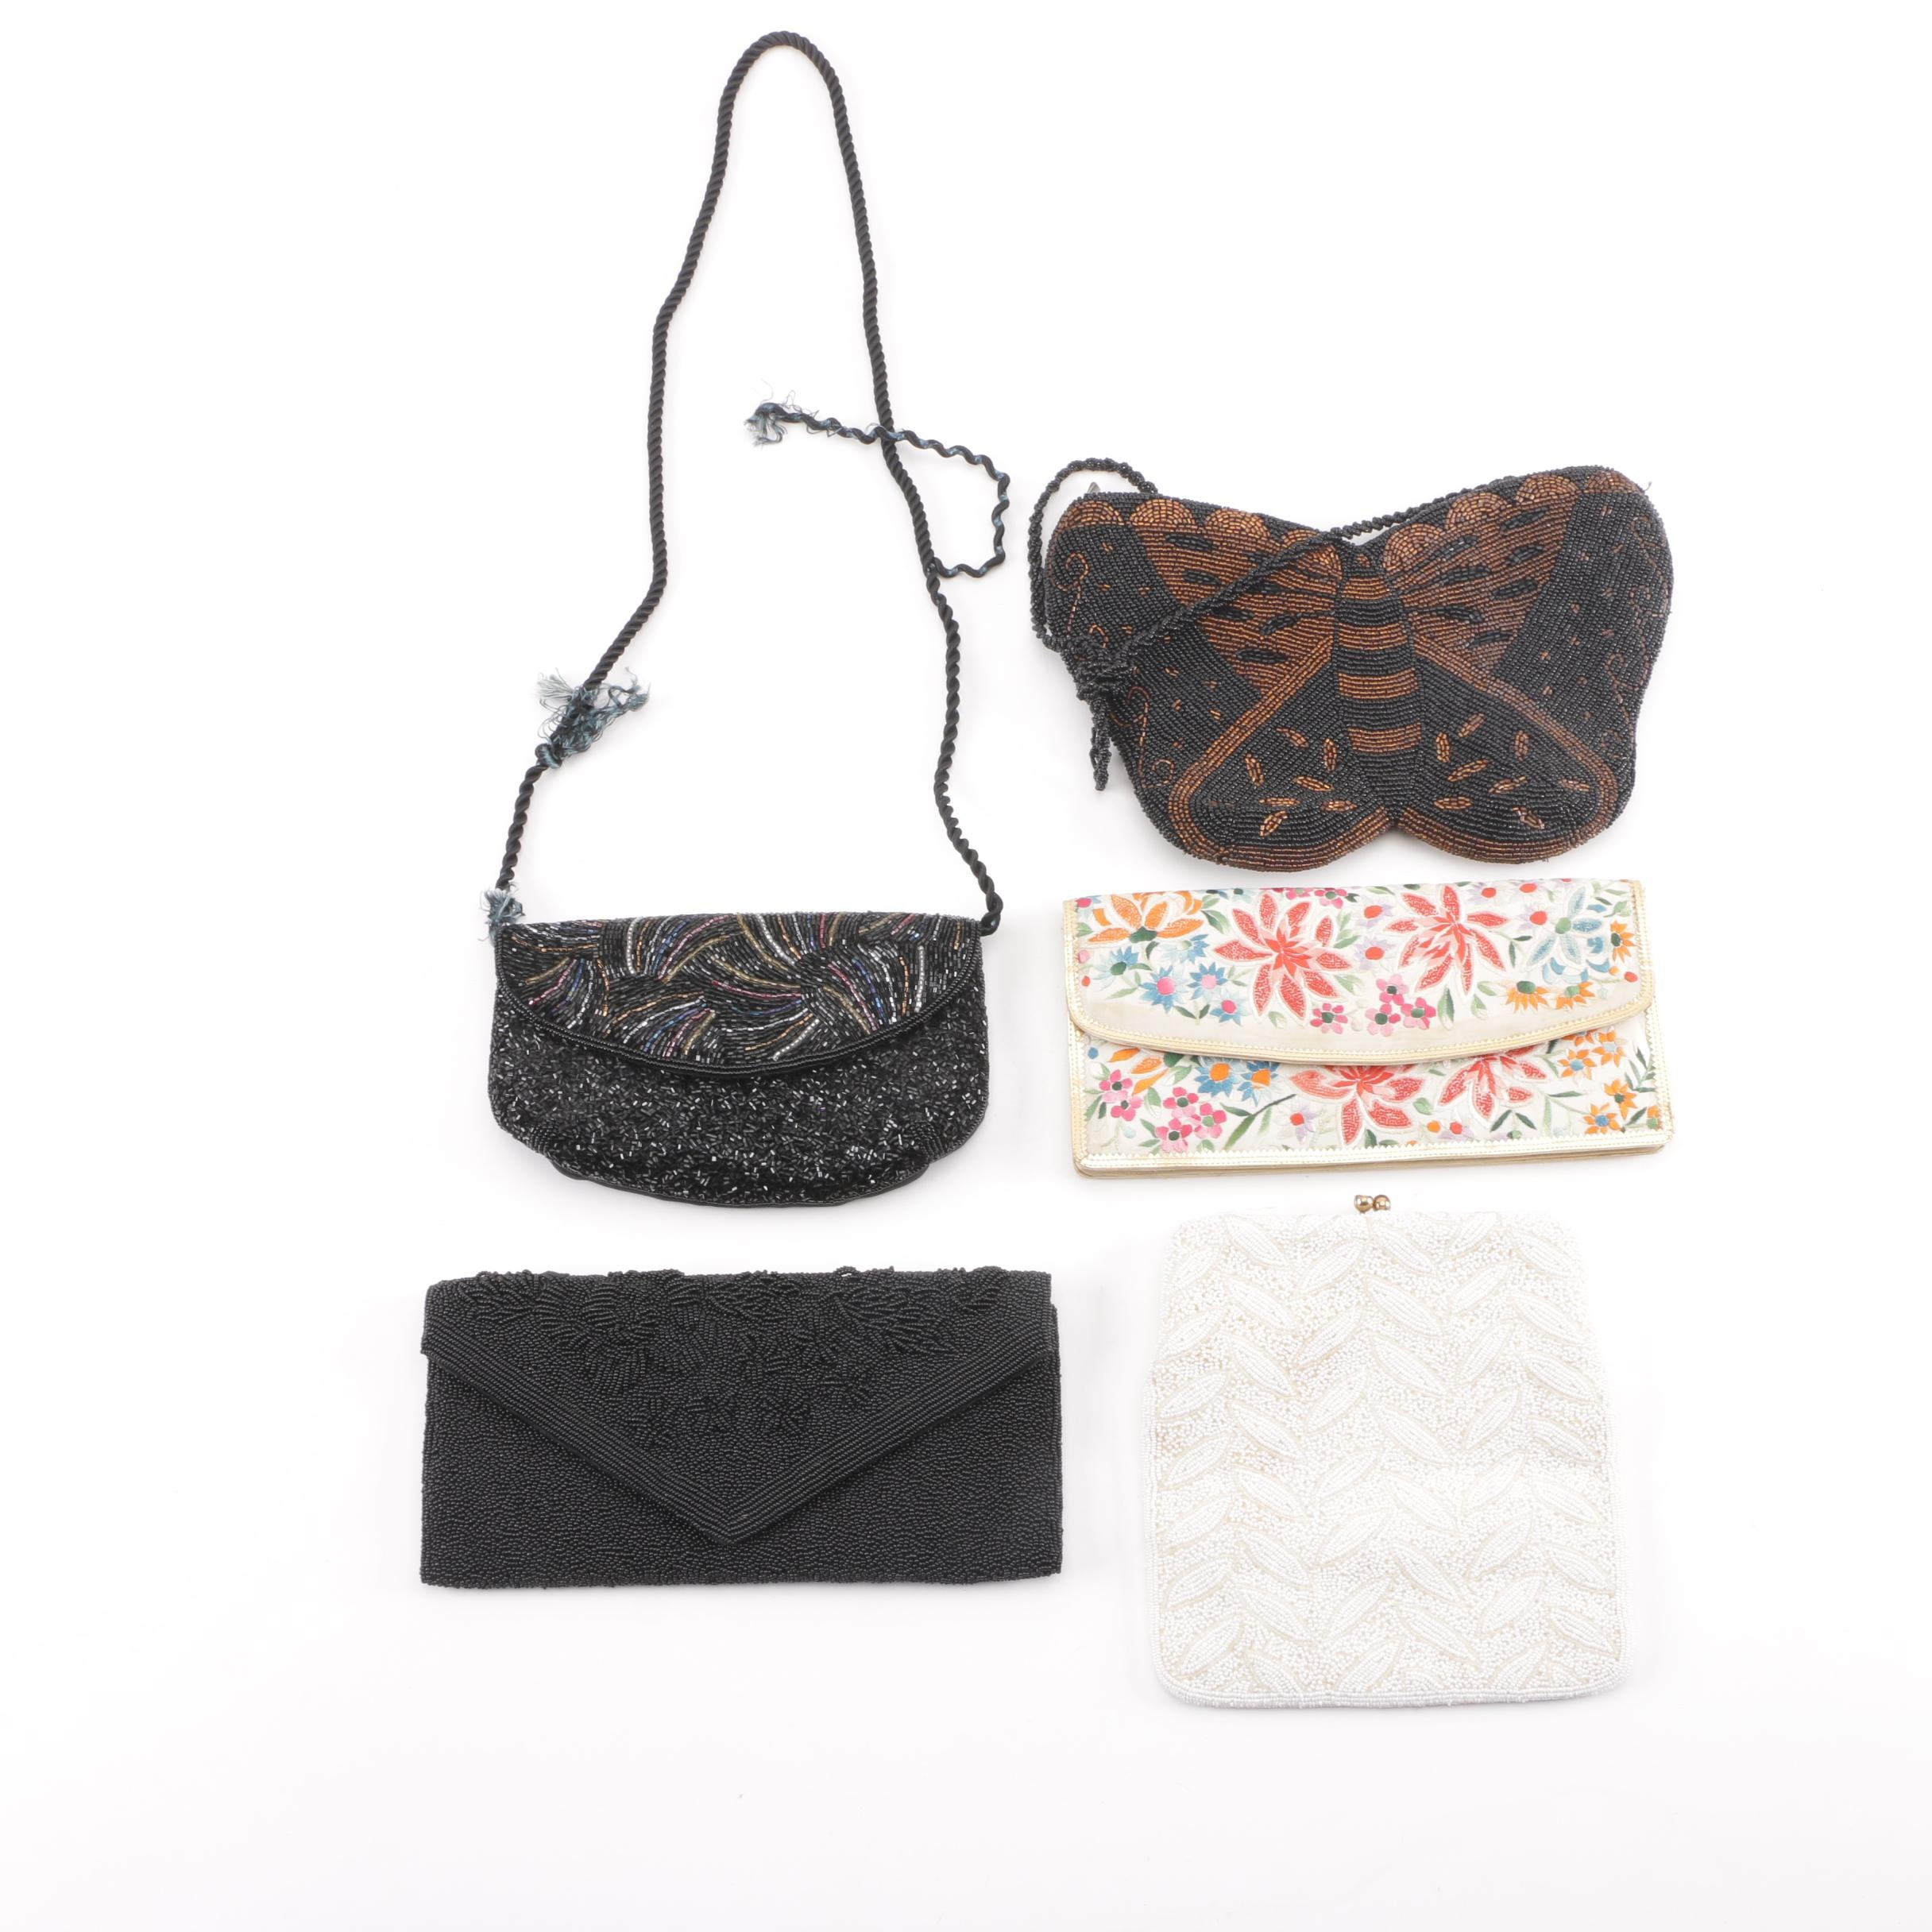 Vintage Beaded Evening Bags and Clutches Including Magid